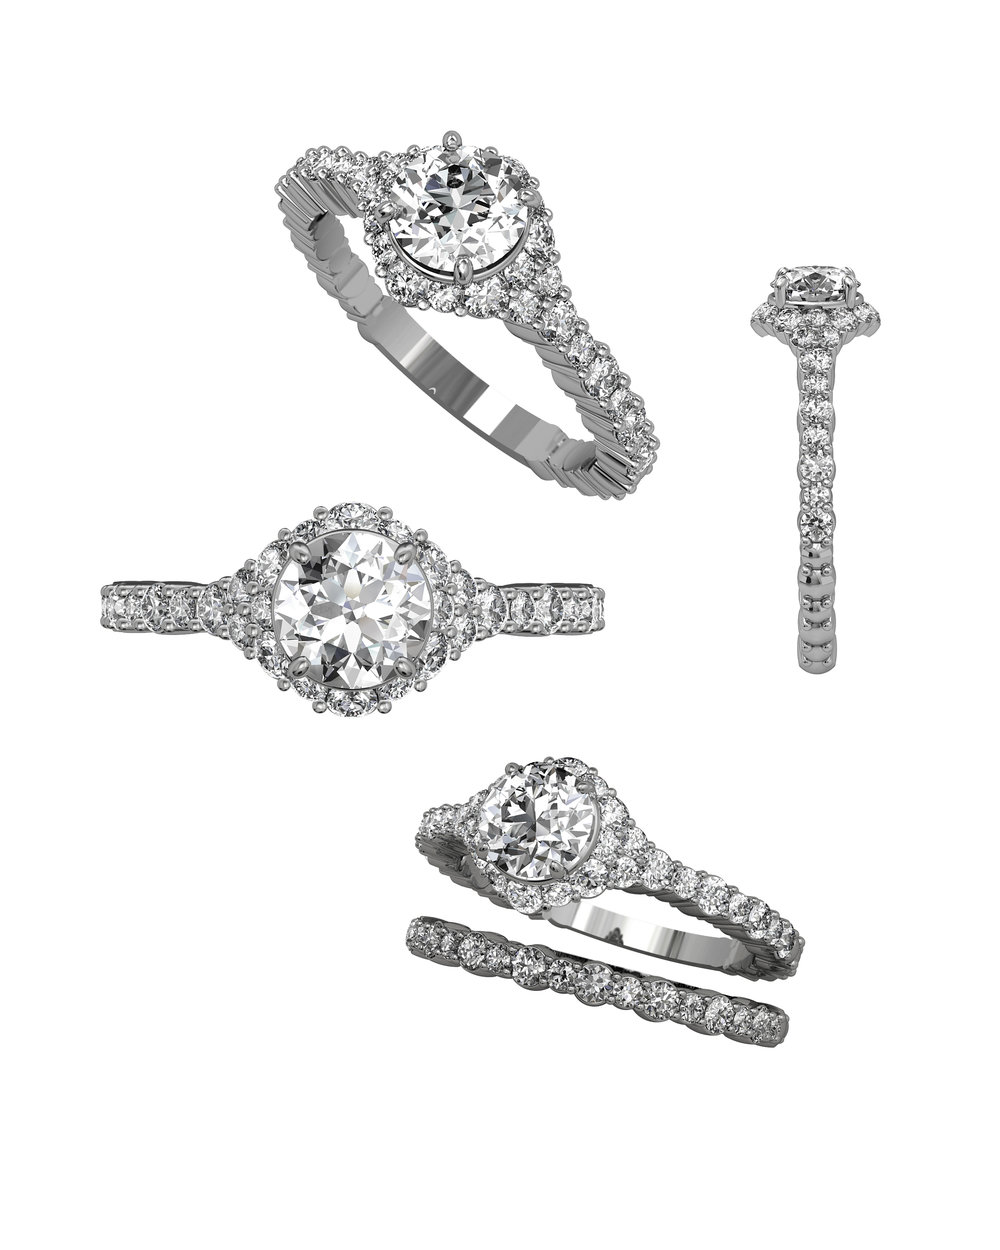 designer diamond bridal jewelry-72690.jpg